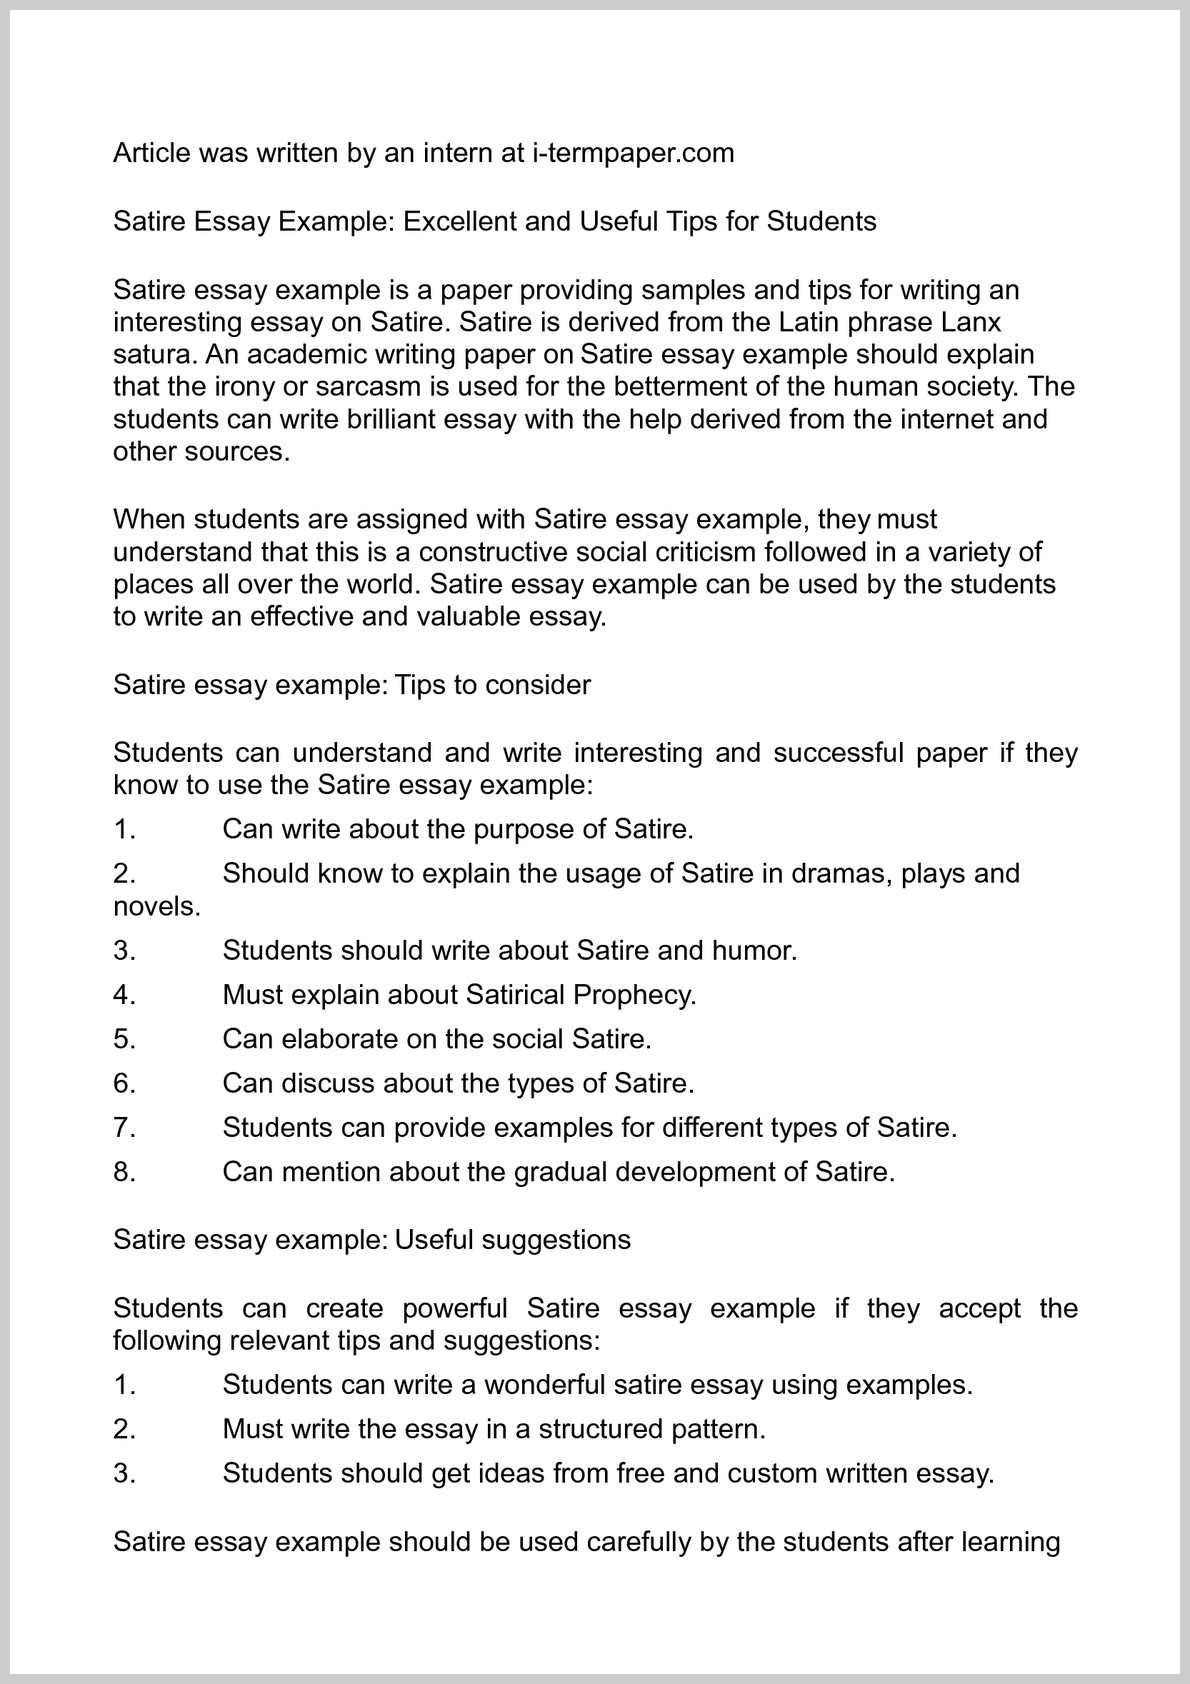 014 Essay Satiric Negative Impacts Of Social Media The Best Writing Satirical Topics Frightening Ideas For High School Topic Full